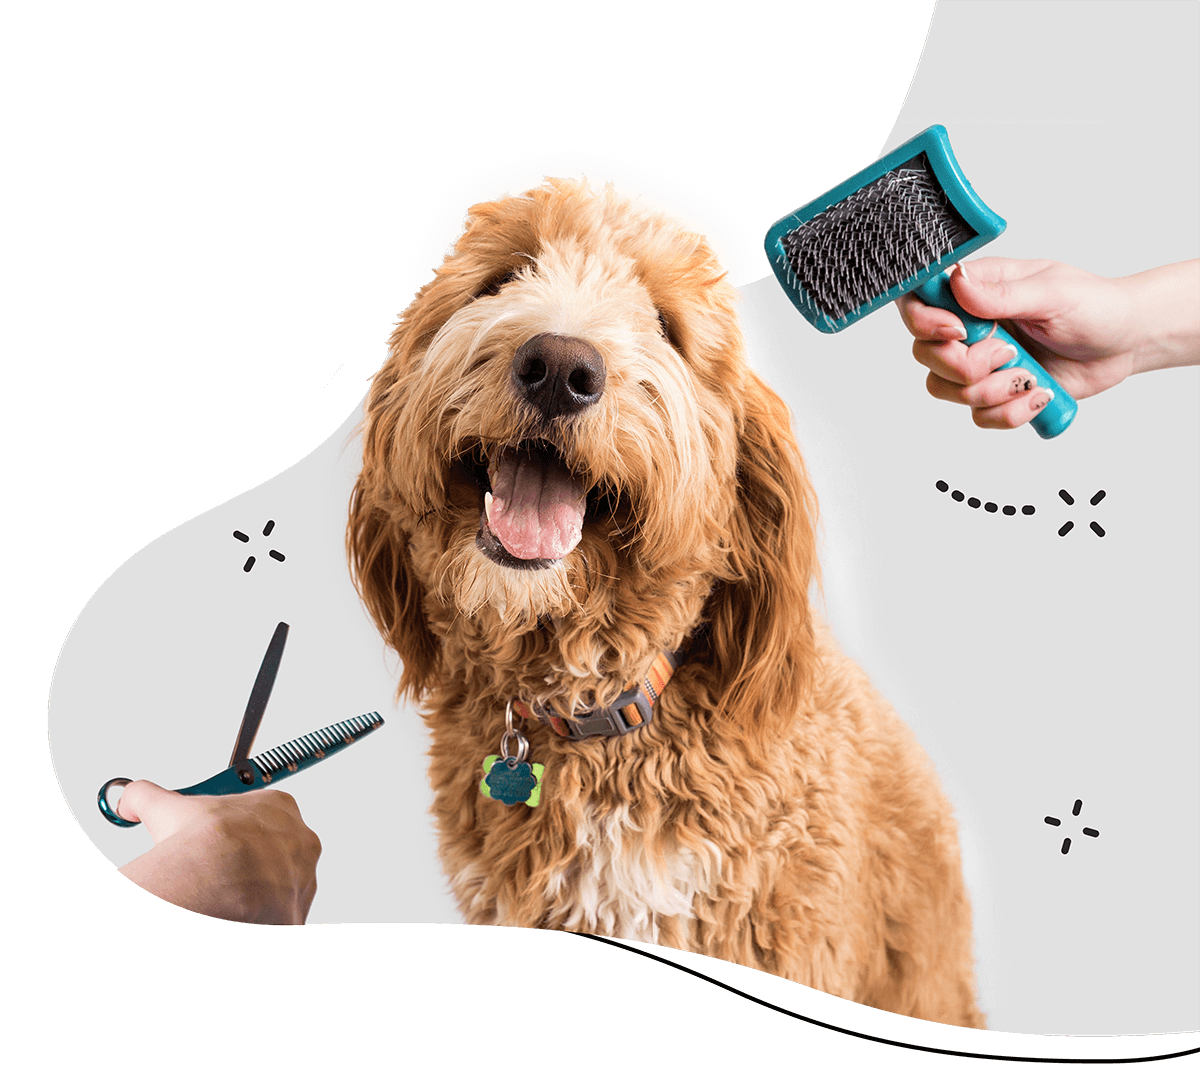 https://thecaninebeautyroom.co.uk/wp-content/uploads/2019/08/hero_home_3.png